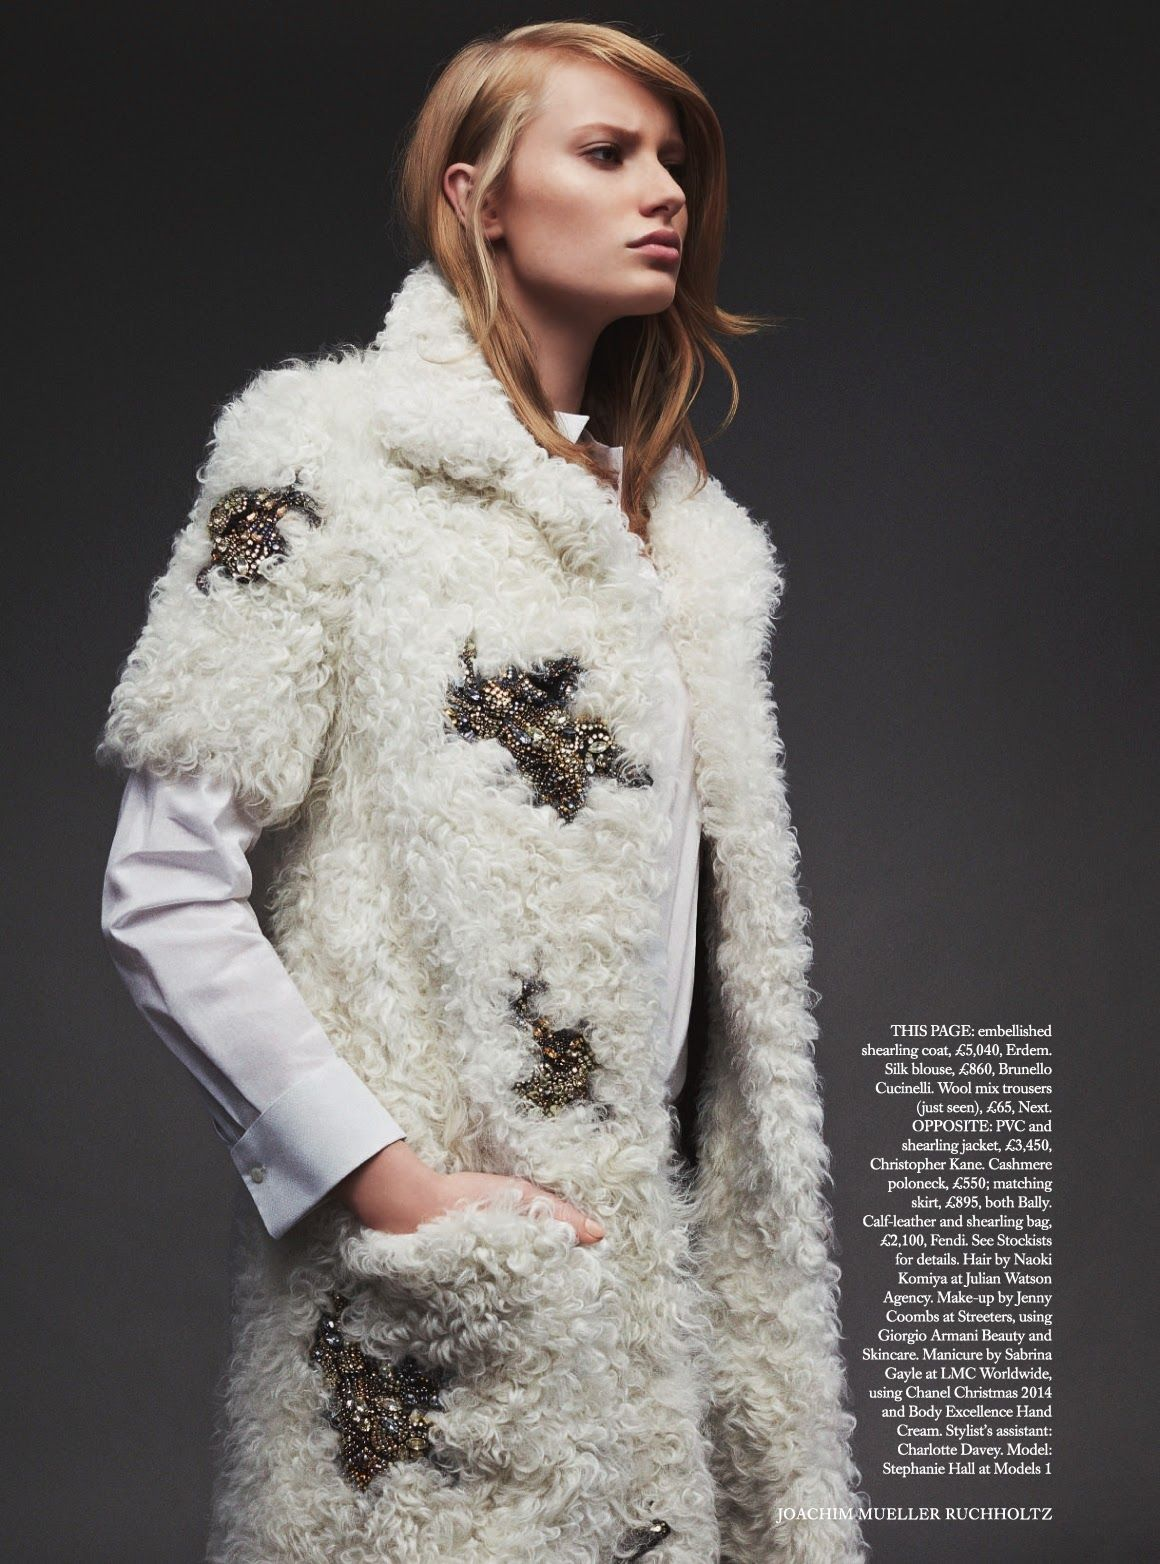 Full Pelt: Harper's Bazaar UK November 2014 Stephanie Hall by Joachim Mueller Ruchholtz ERDEM